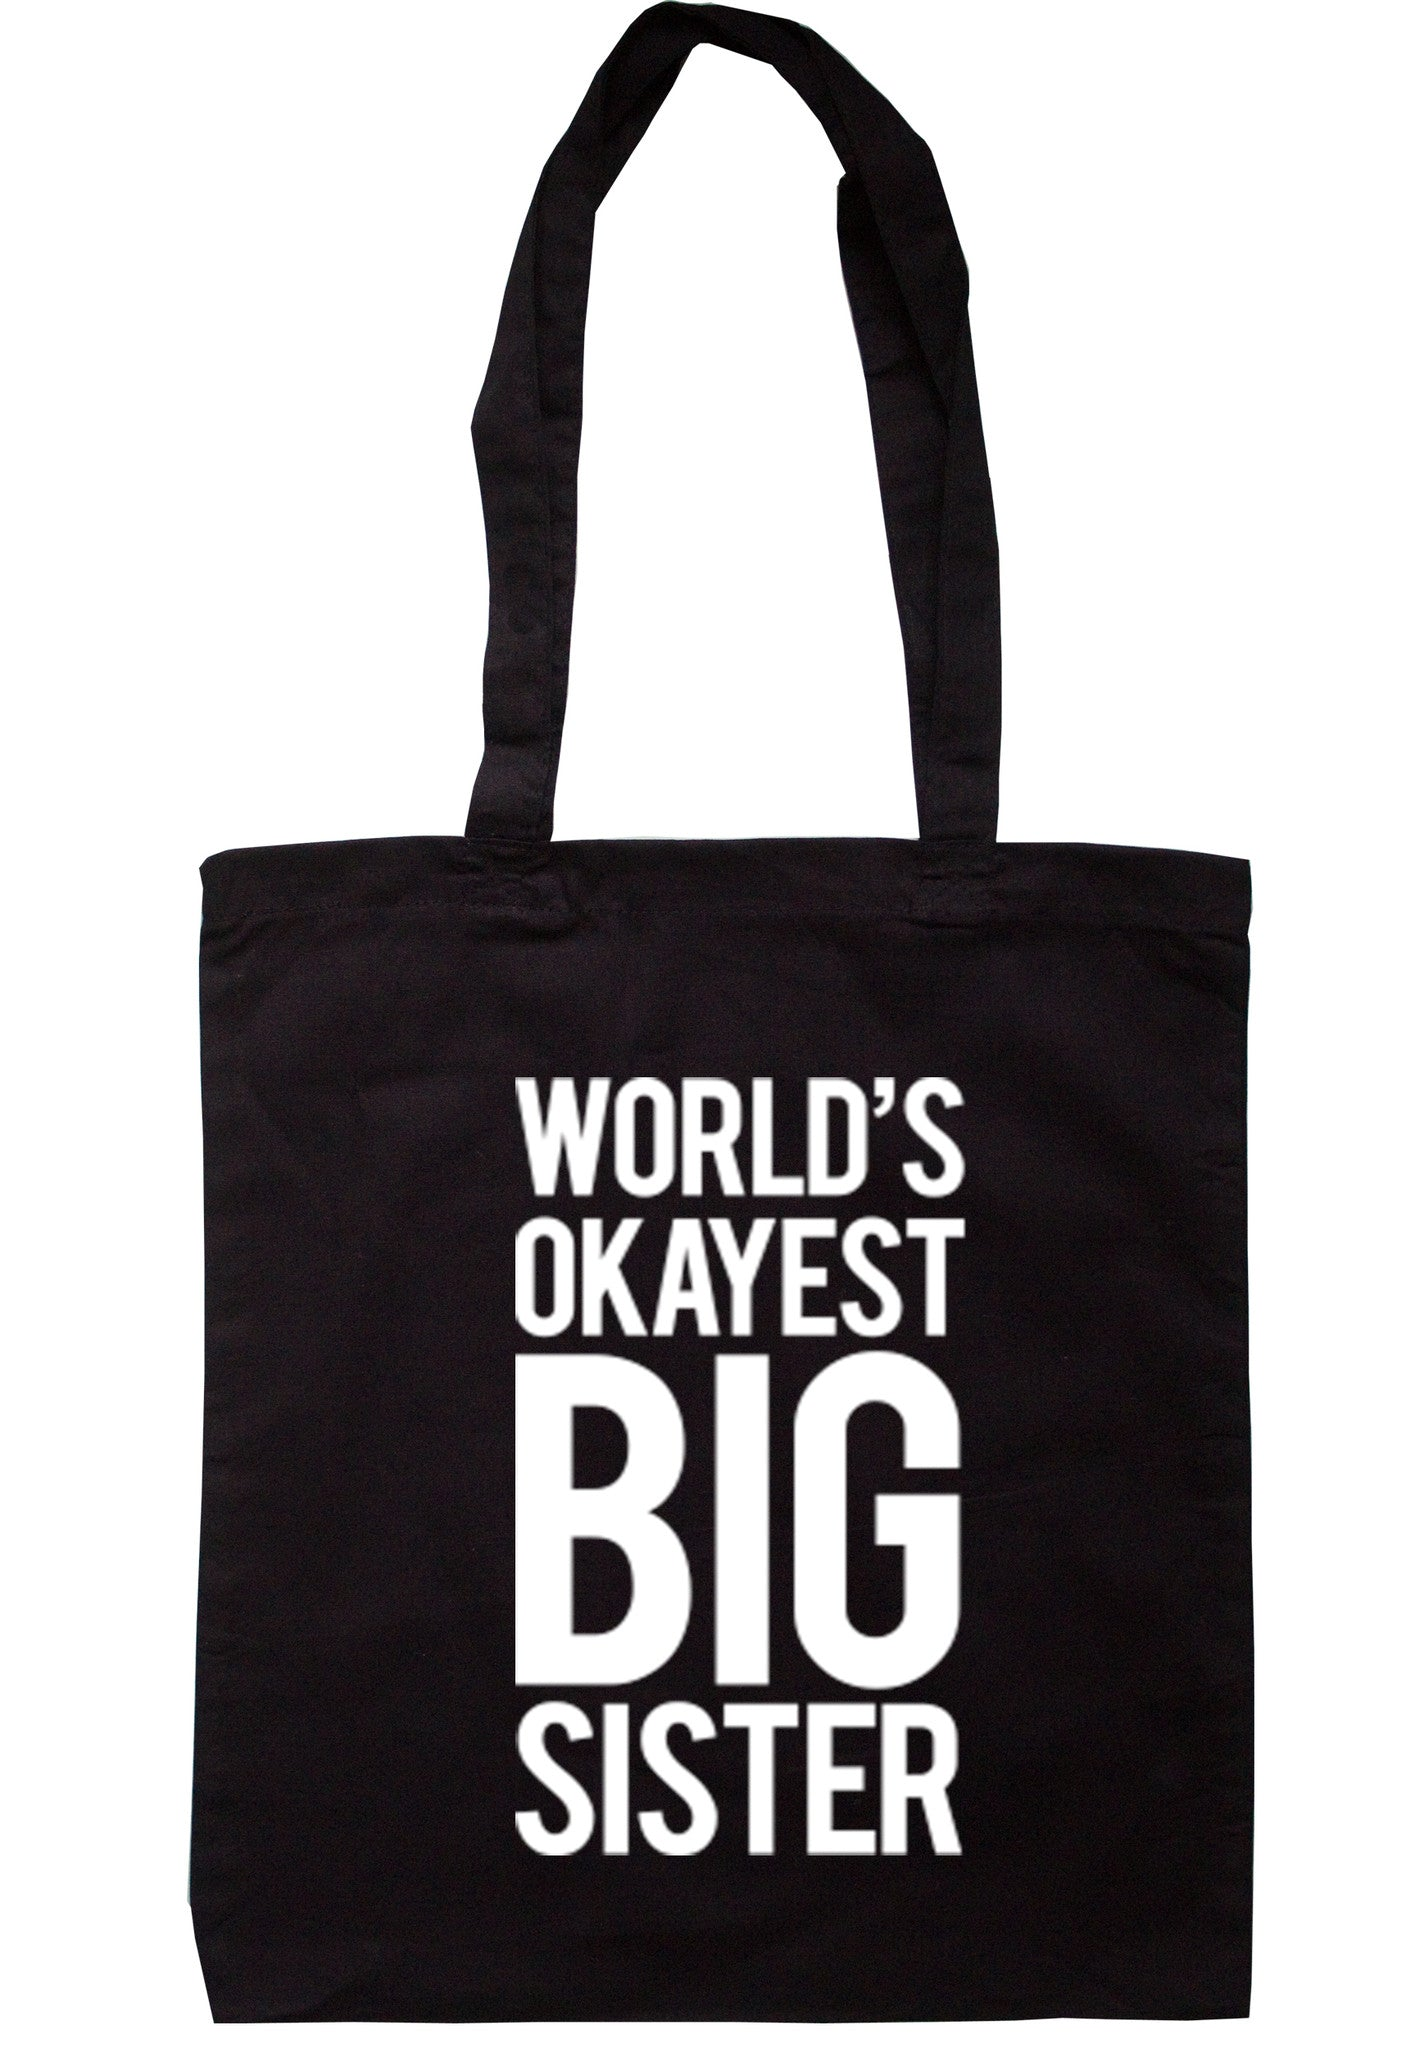 Worlds Okayest Big Sister Tote Bag TB0036 - Illustrated Identity Ltd.